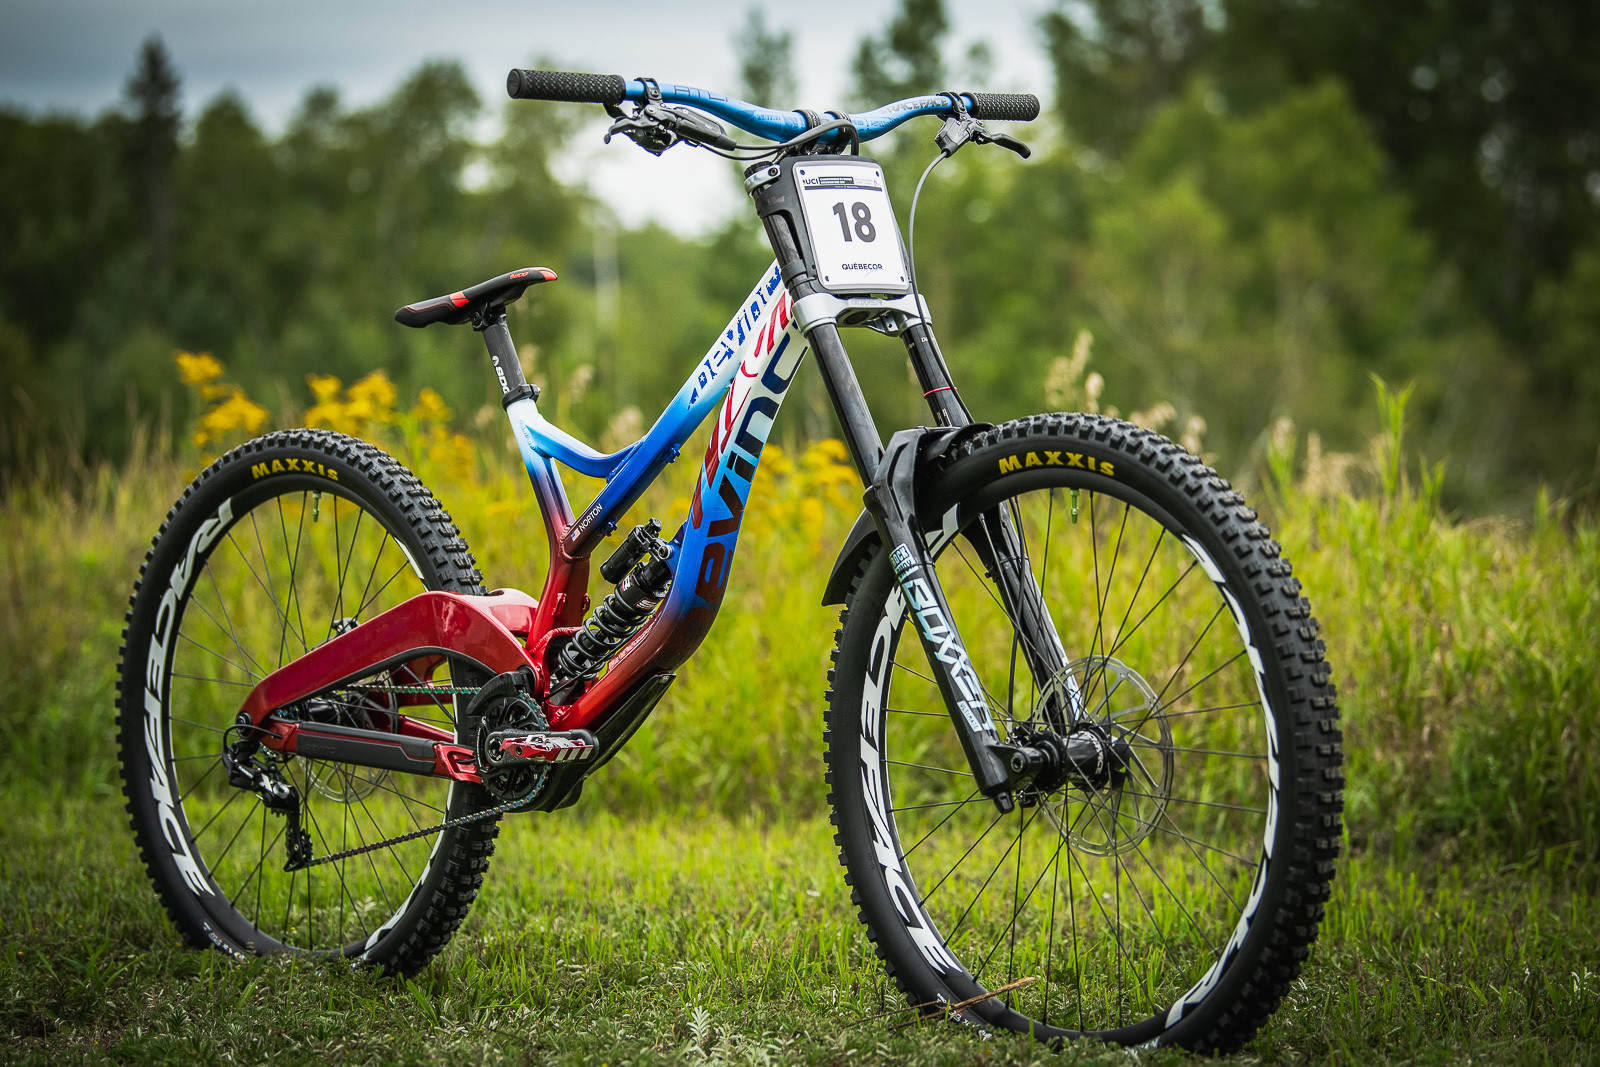 Dakotah Norton's Devinci Wilson for World Championships - Devinci Unior World Championships Downhill Race Bikes - Mountain Biking Pictures - Vital MTB